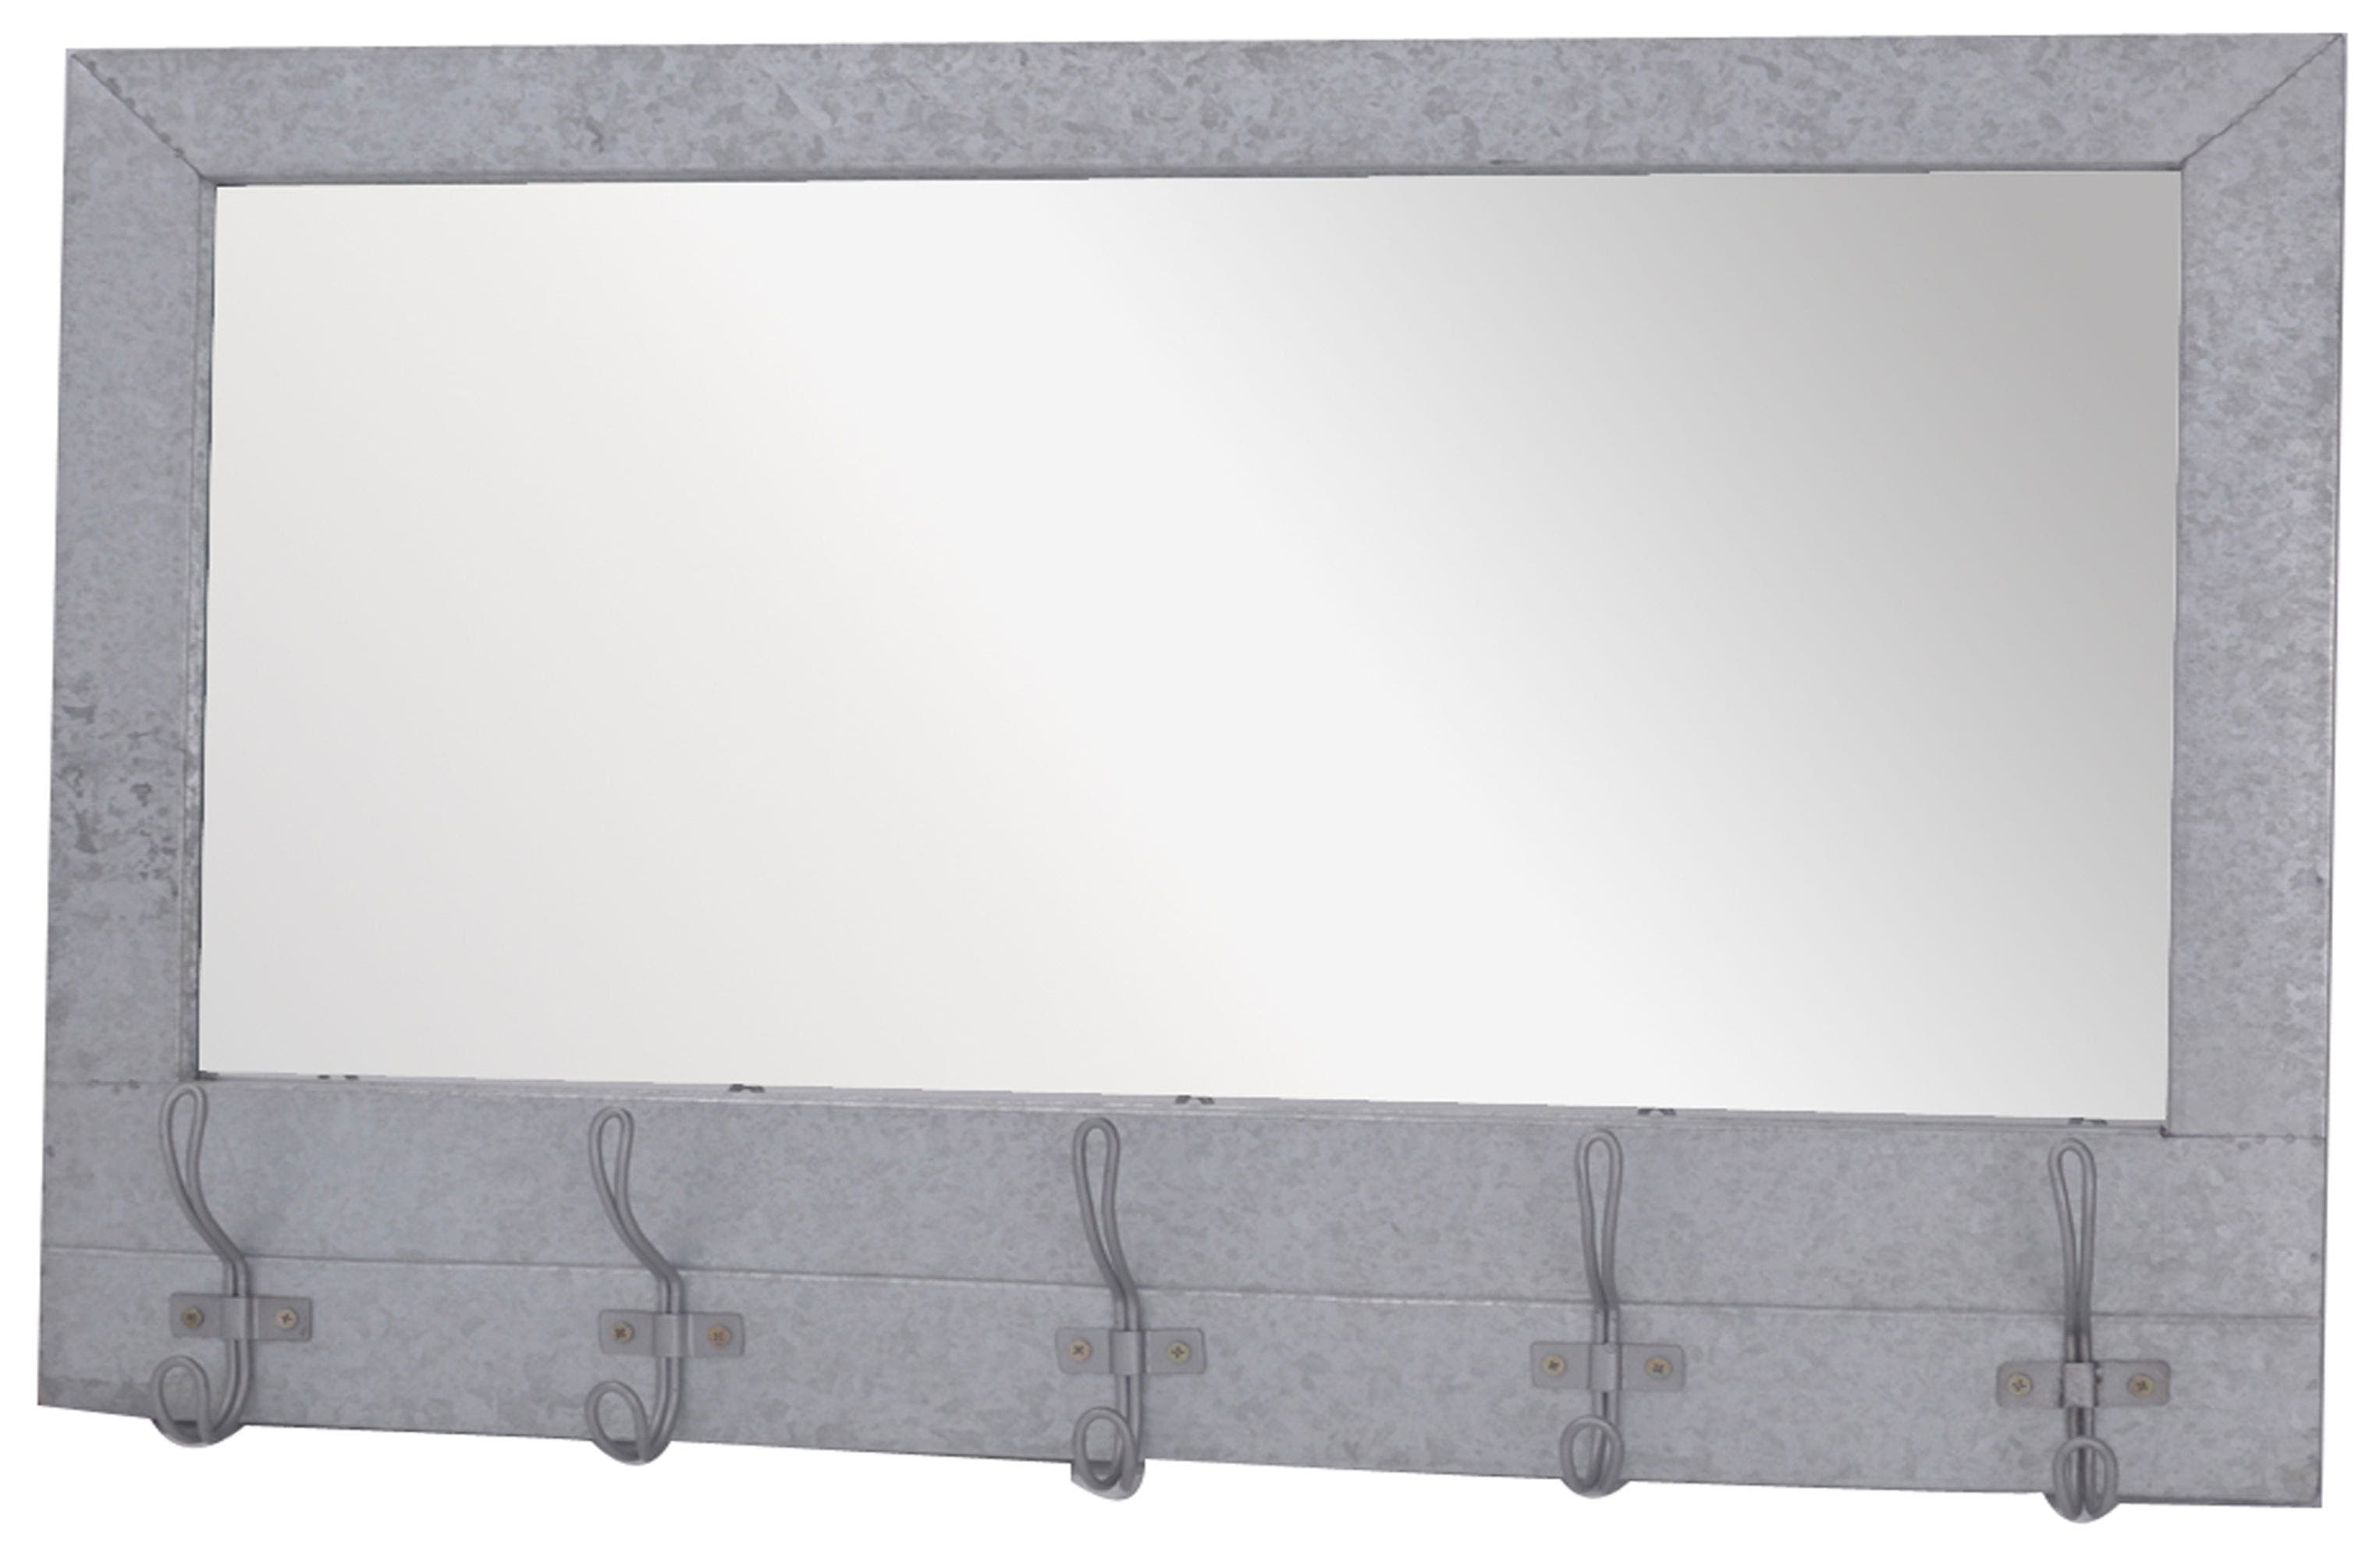 Main Image - Crystal Art Gallery Metal Wall Mirror with Hooks